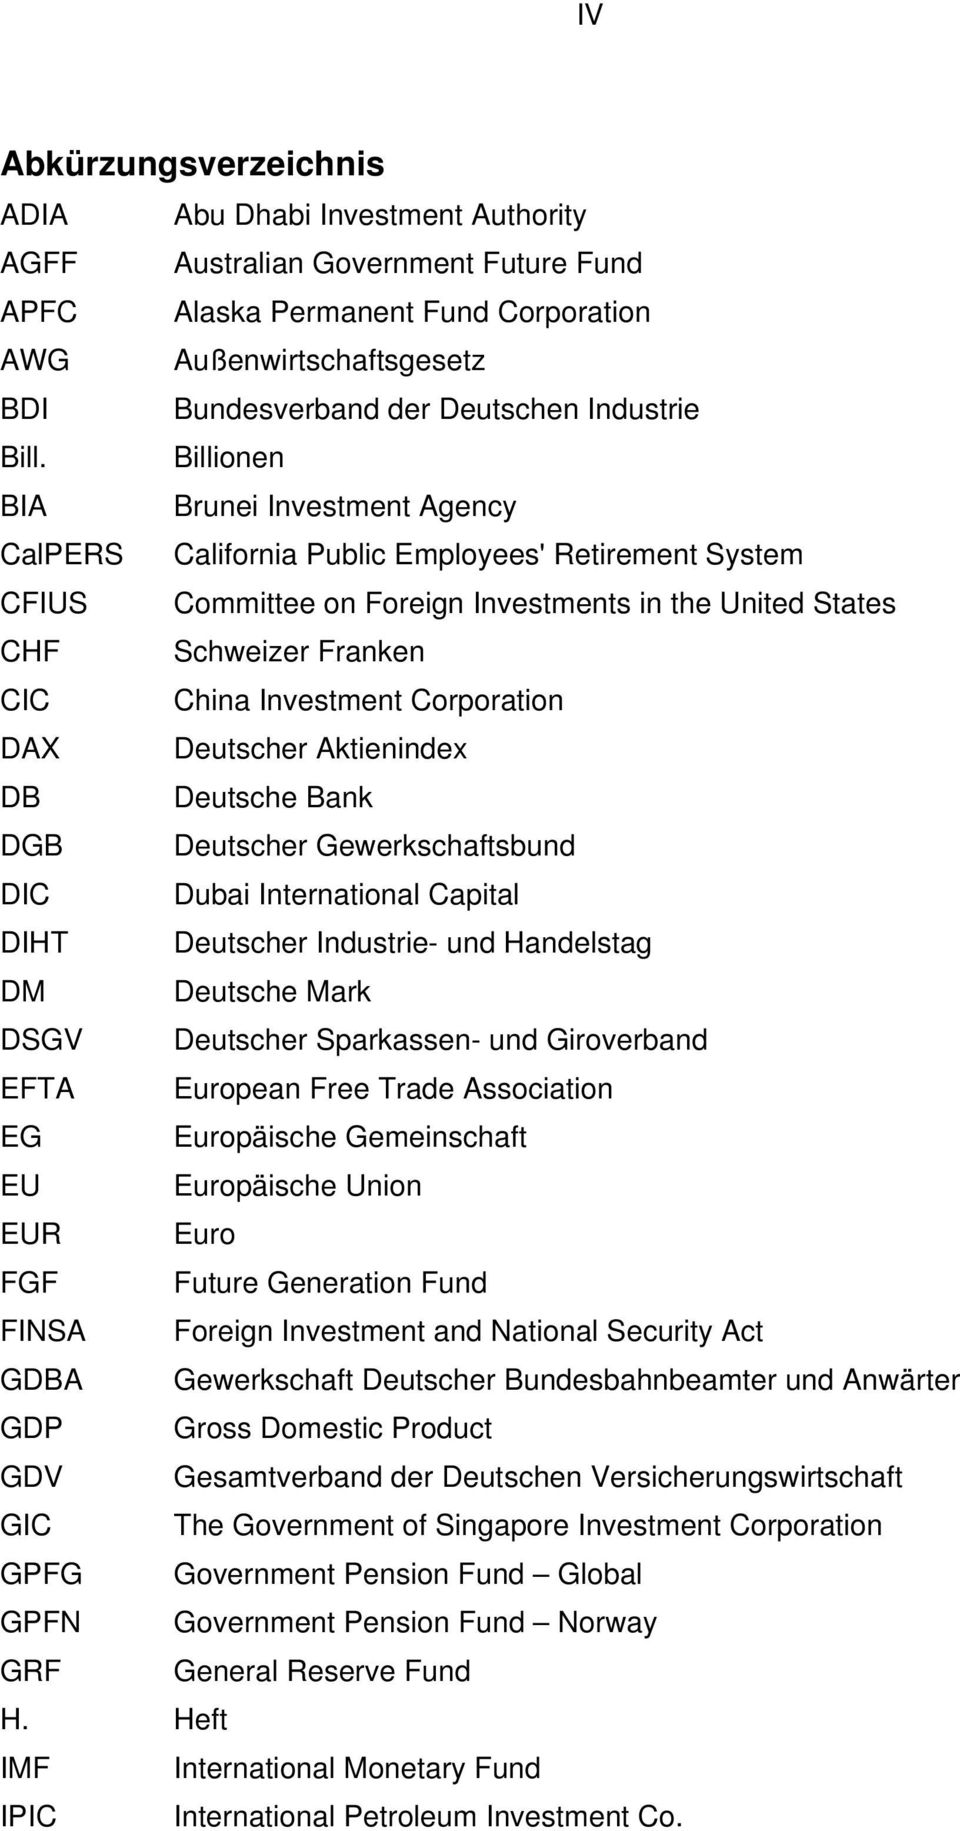 Billionen BIA Brunei Investment Agency CalPERS California Public Employees' Retirement System CFIUS Committee on Foreign Investments in the United States CHF Schweizer Franken CIC China Investment